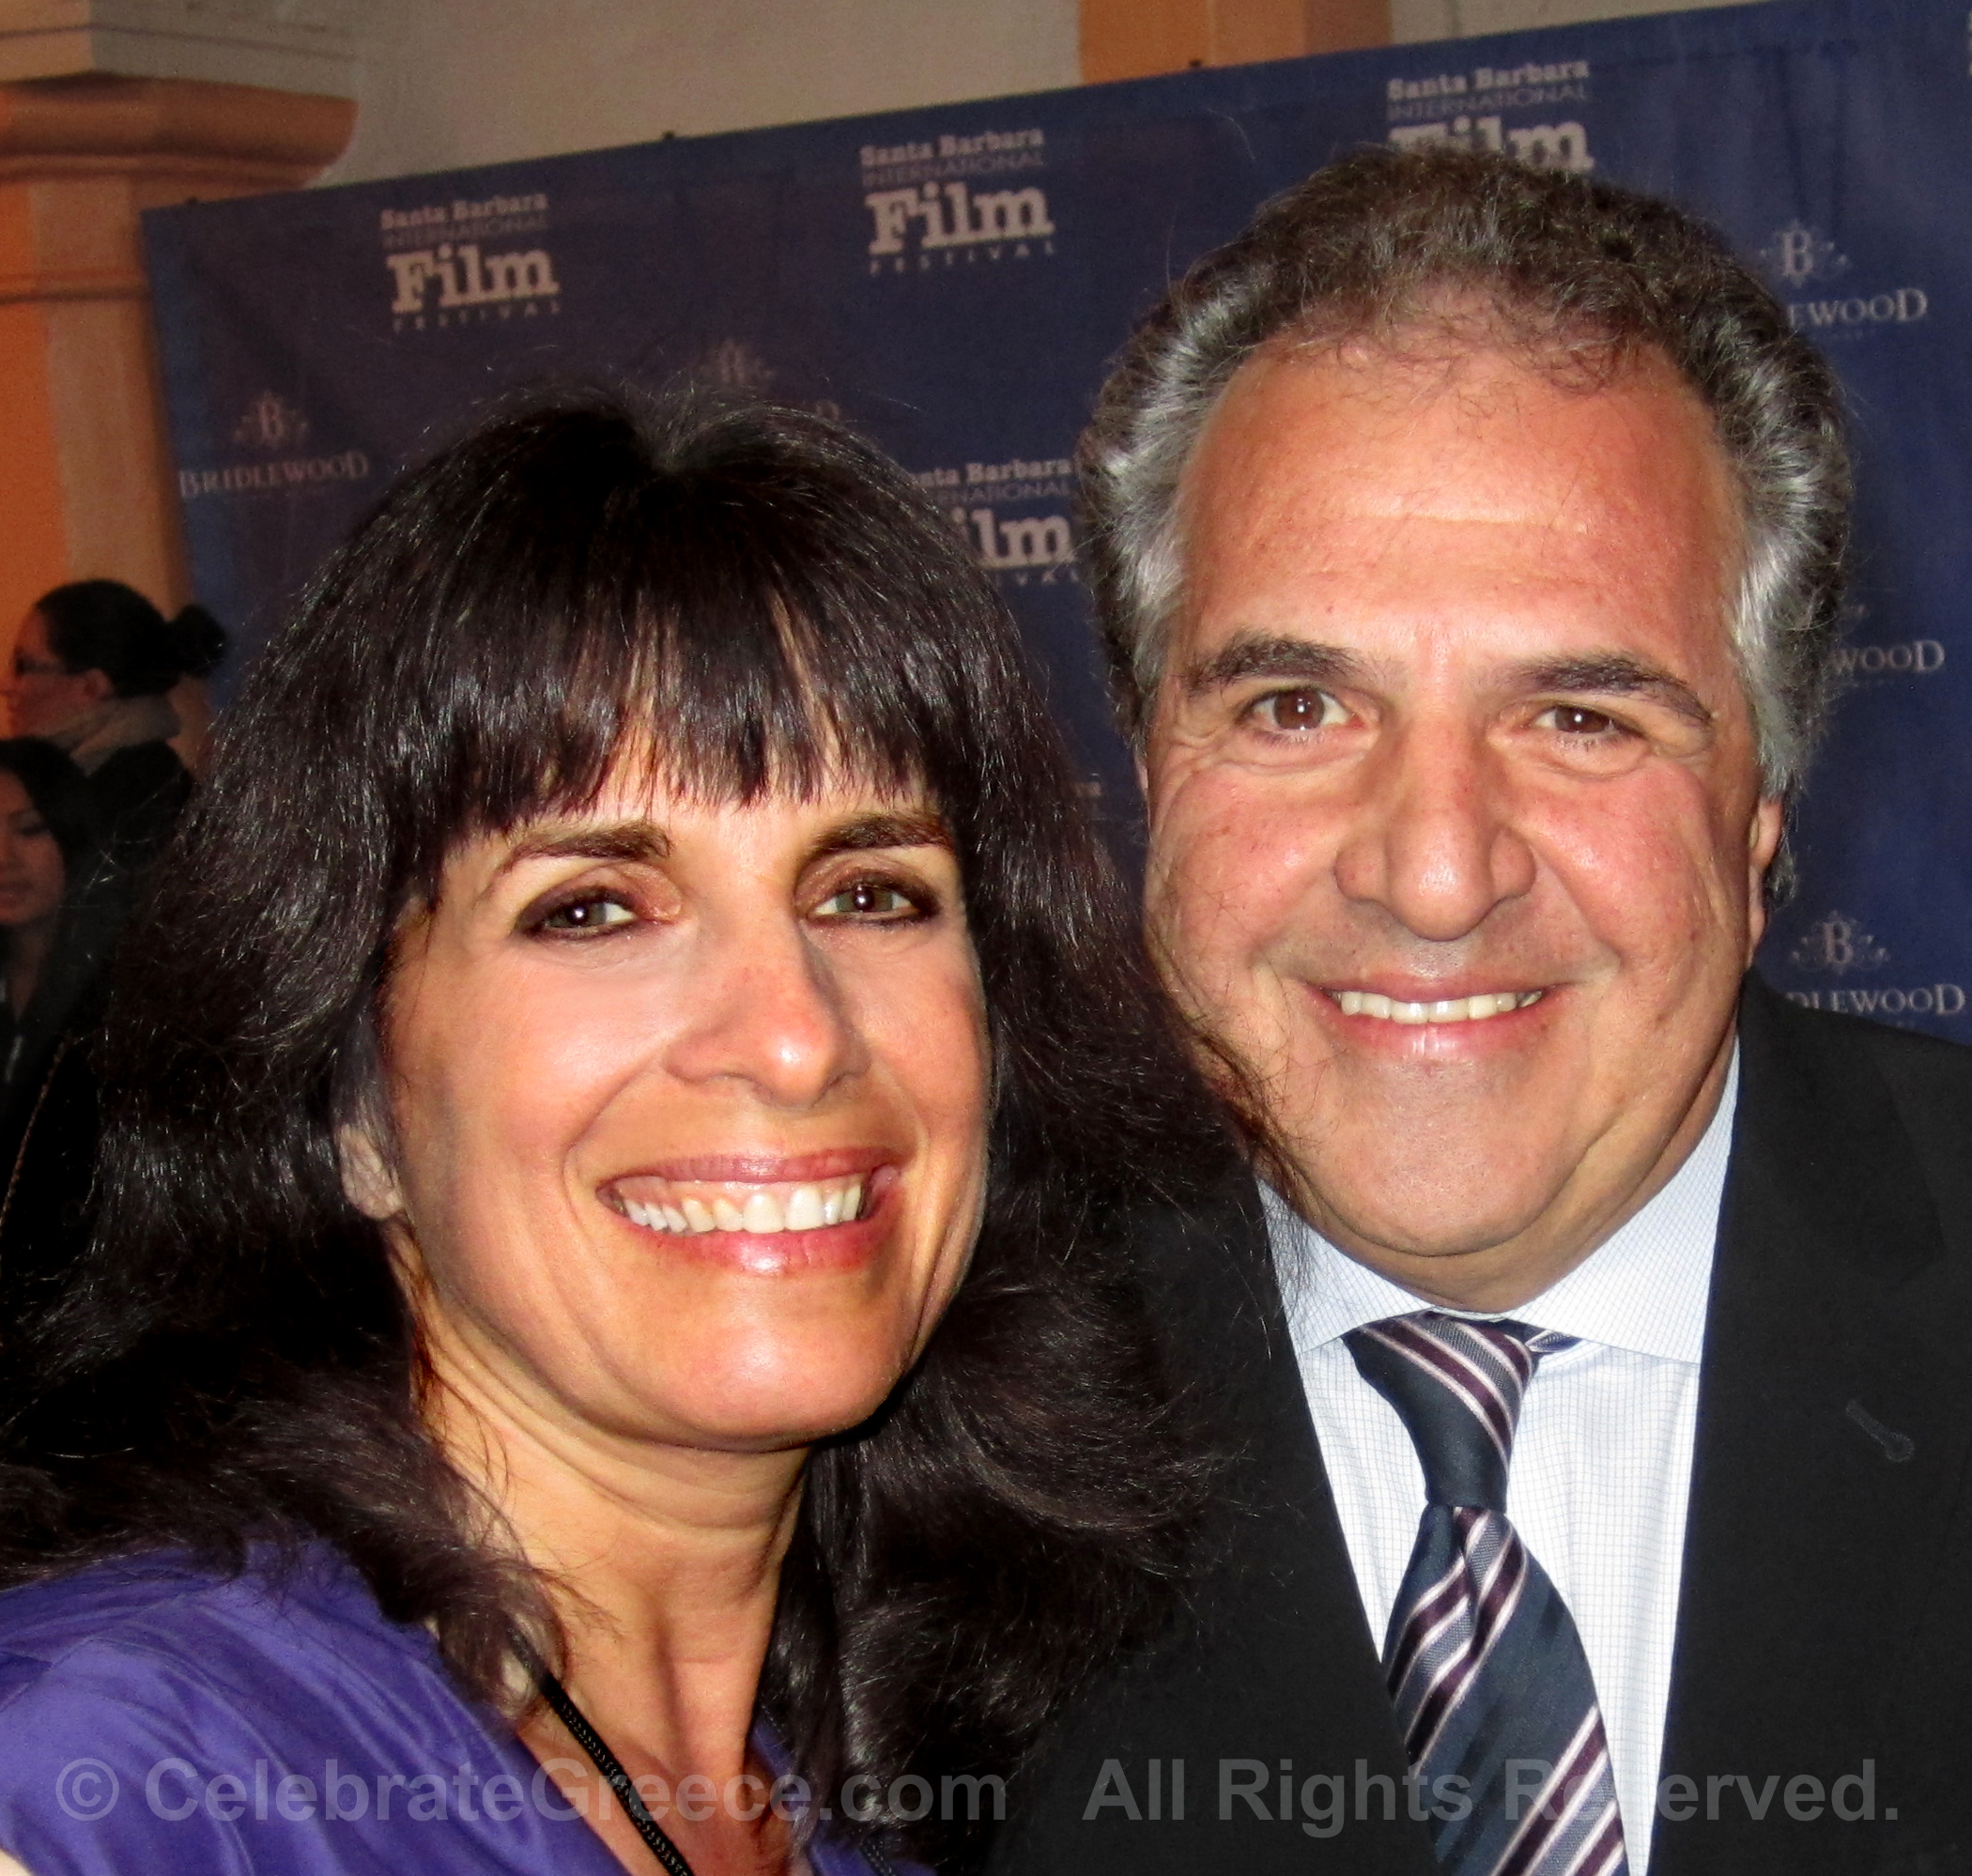 Jim Gianopulos, CEO of Paramount Pictures (Formerly CEO of 20th Century Fox Filmed Entertainment)